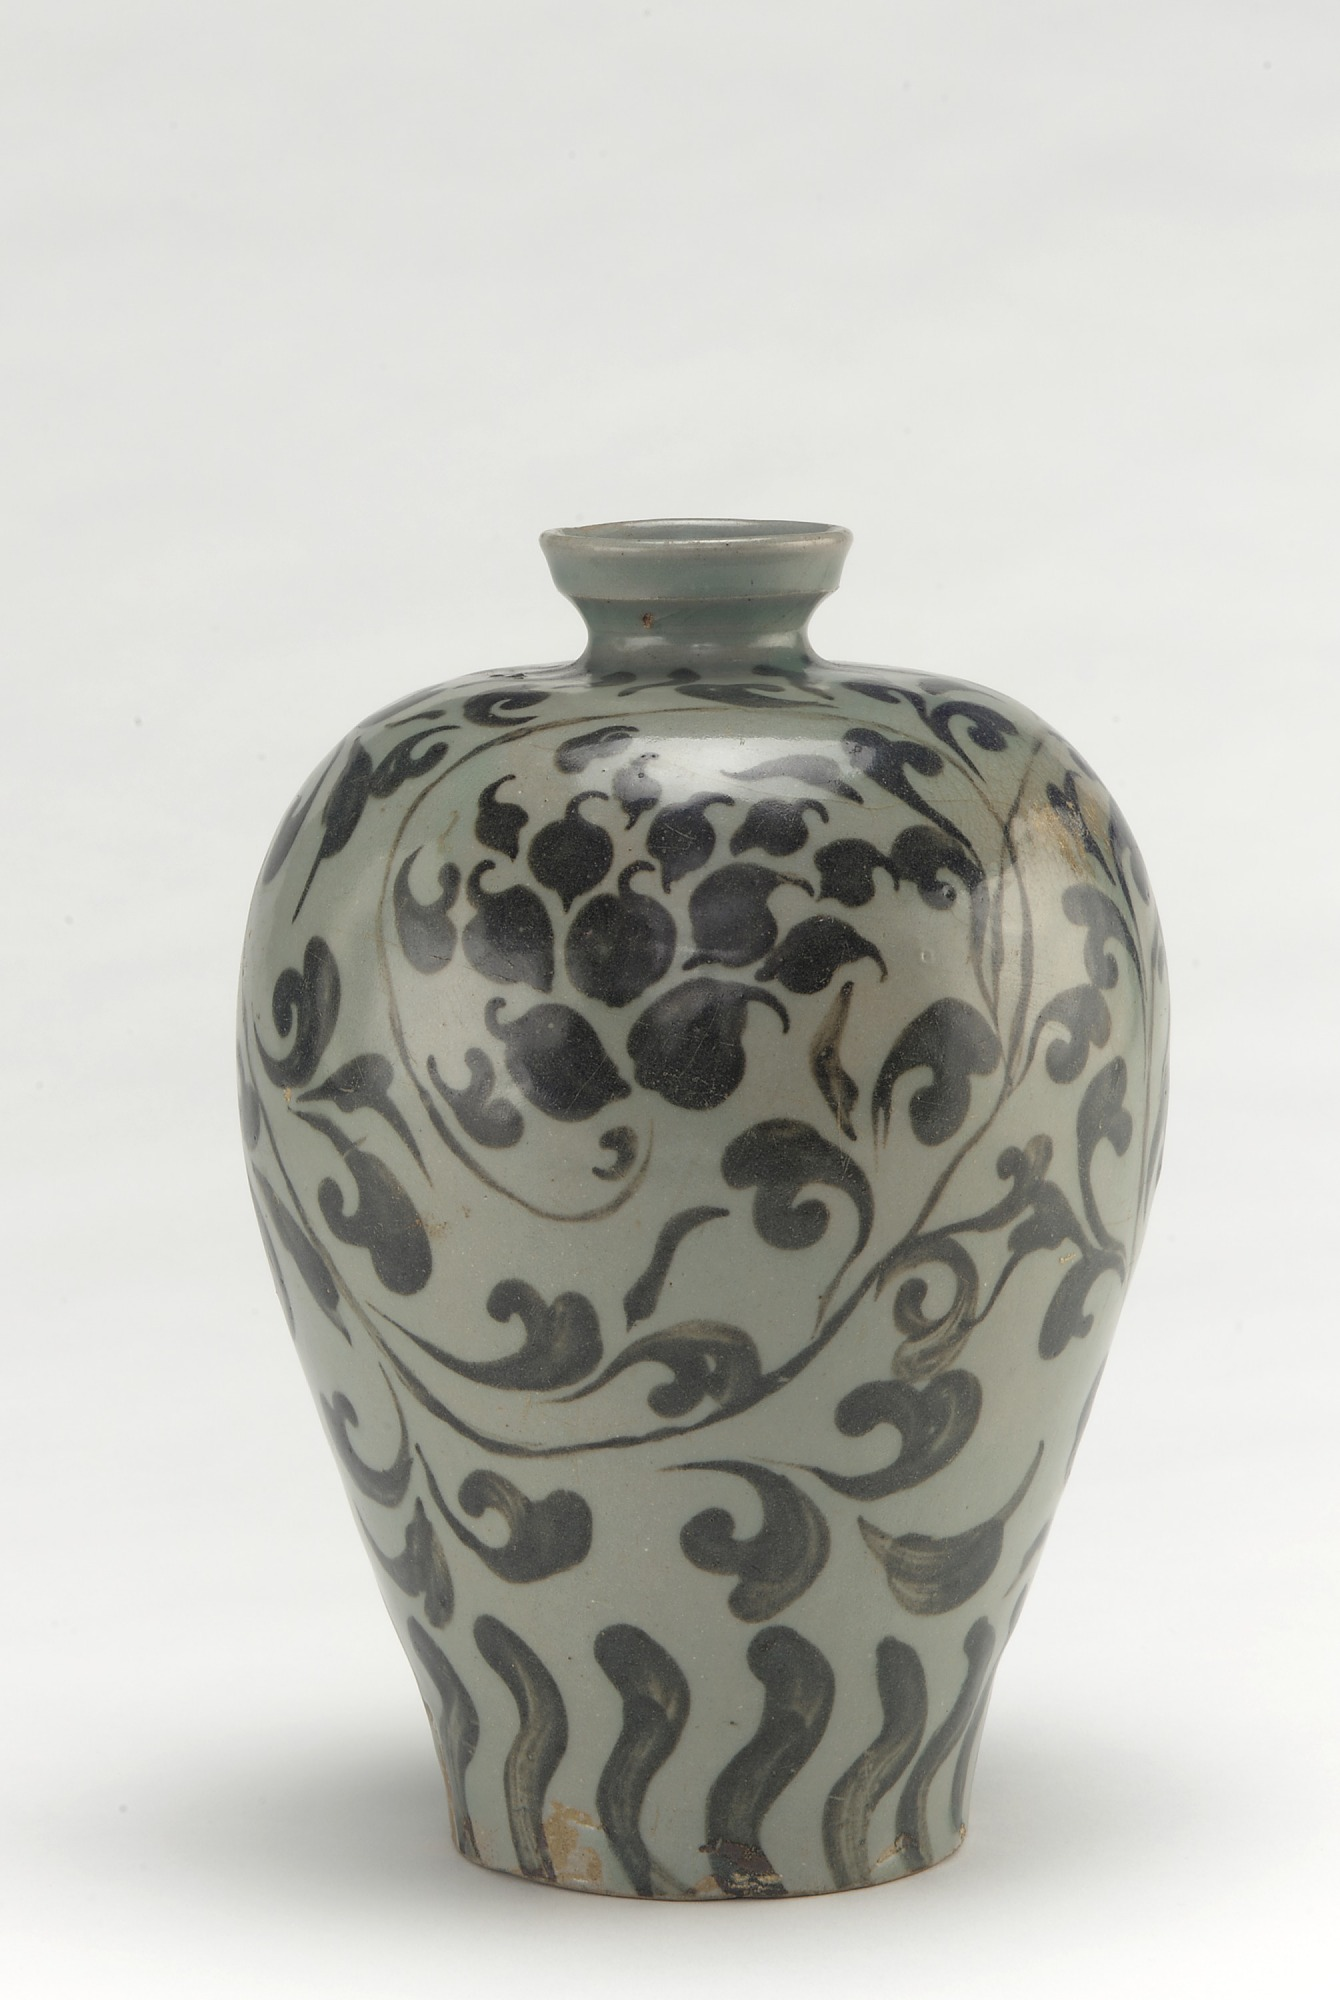 Bottle with design of peony vinescrolls